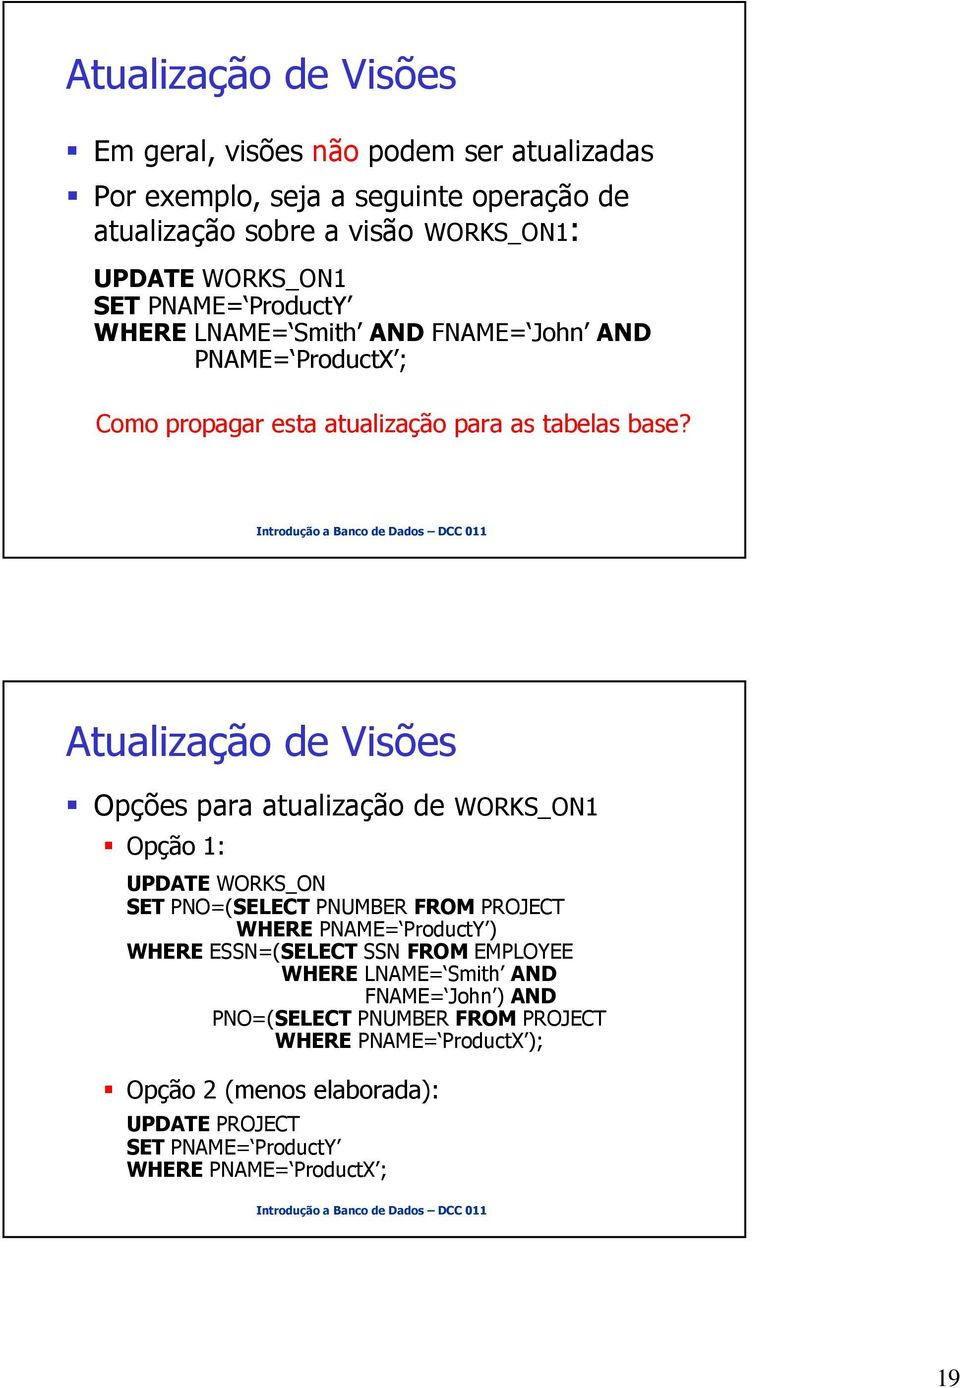 Atualização de Visões Opções para atualização de WORKS_ON1 Opção 1: UPDATE WORKS_ON SET PNO=(SELECT PNUMBER FROM PROJECT WHERE PNAME= ProductY ) WHERE ESSN=(SELECT